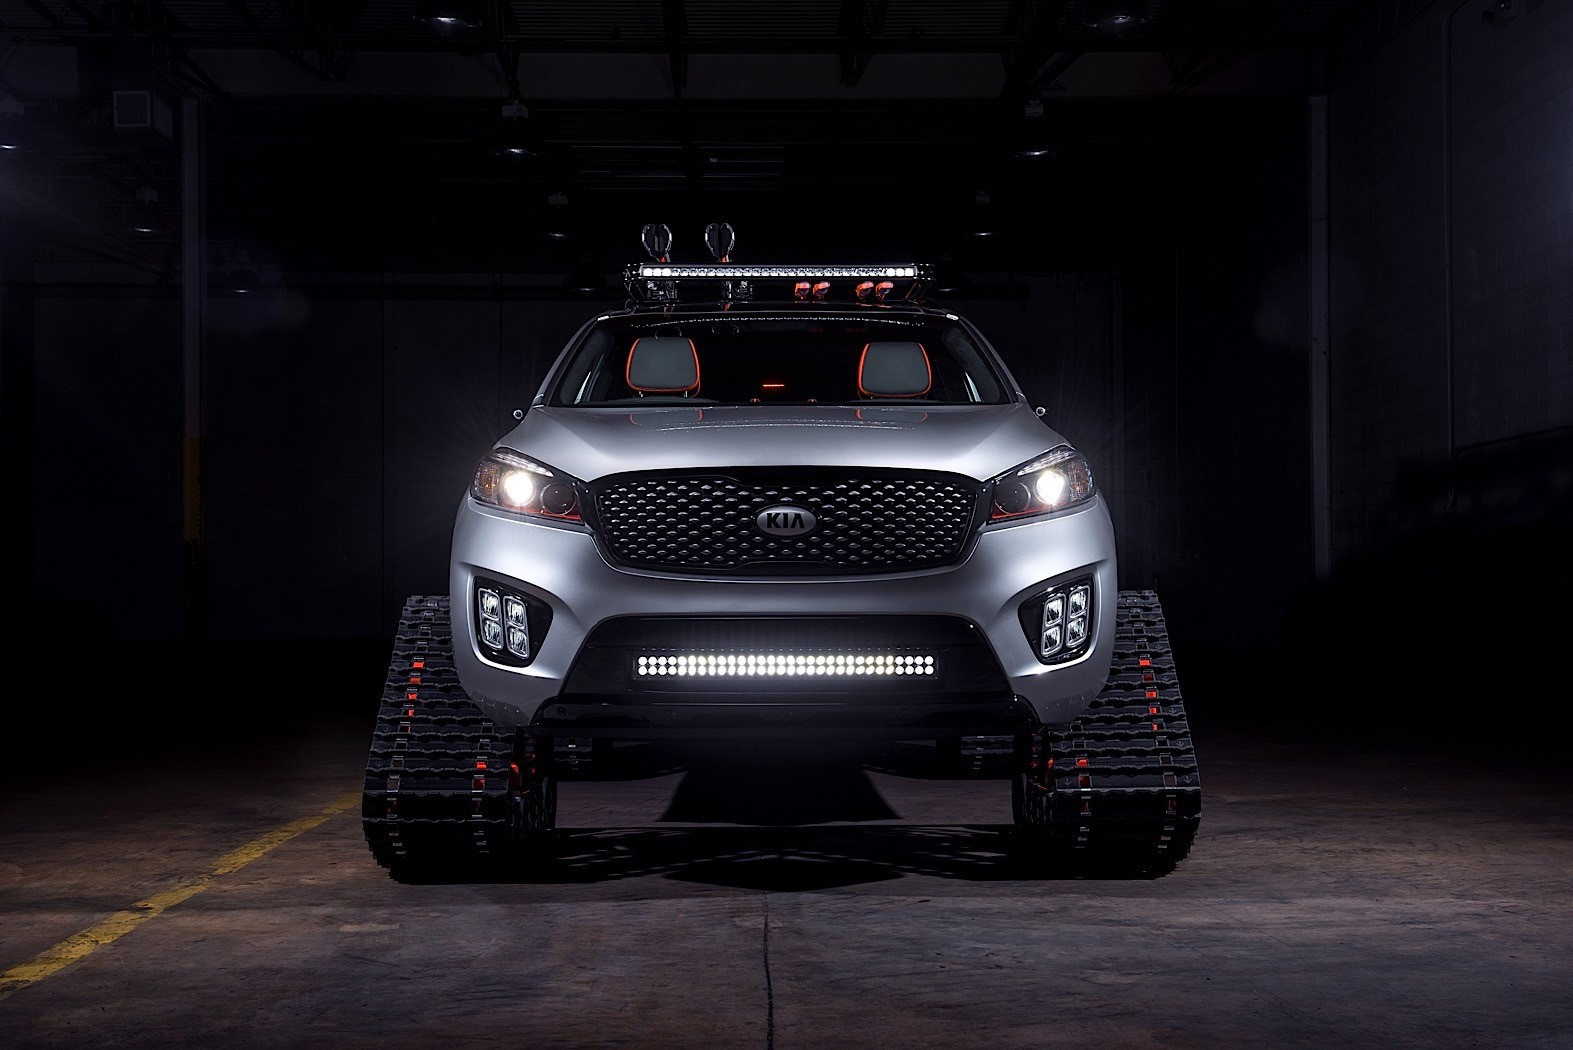 New Kia Sorento Interior Design Revealed in First Teaser ...